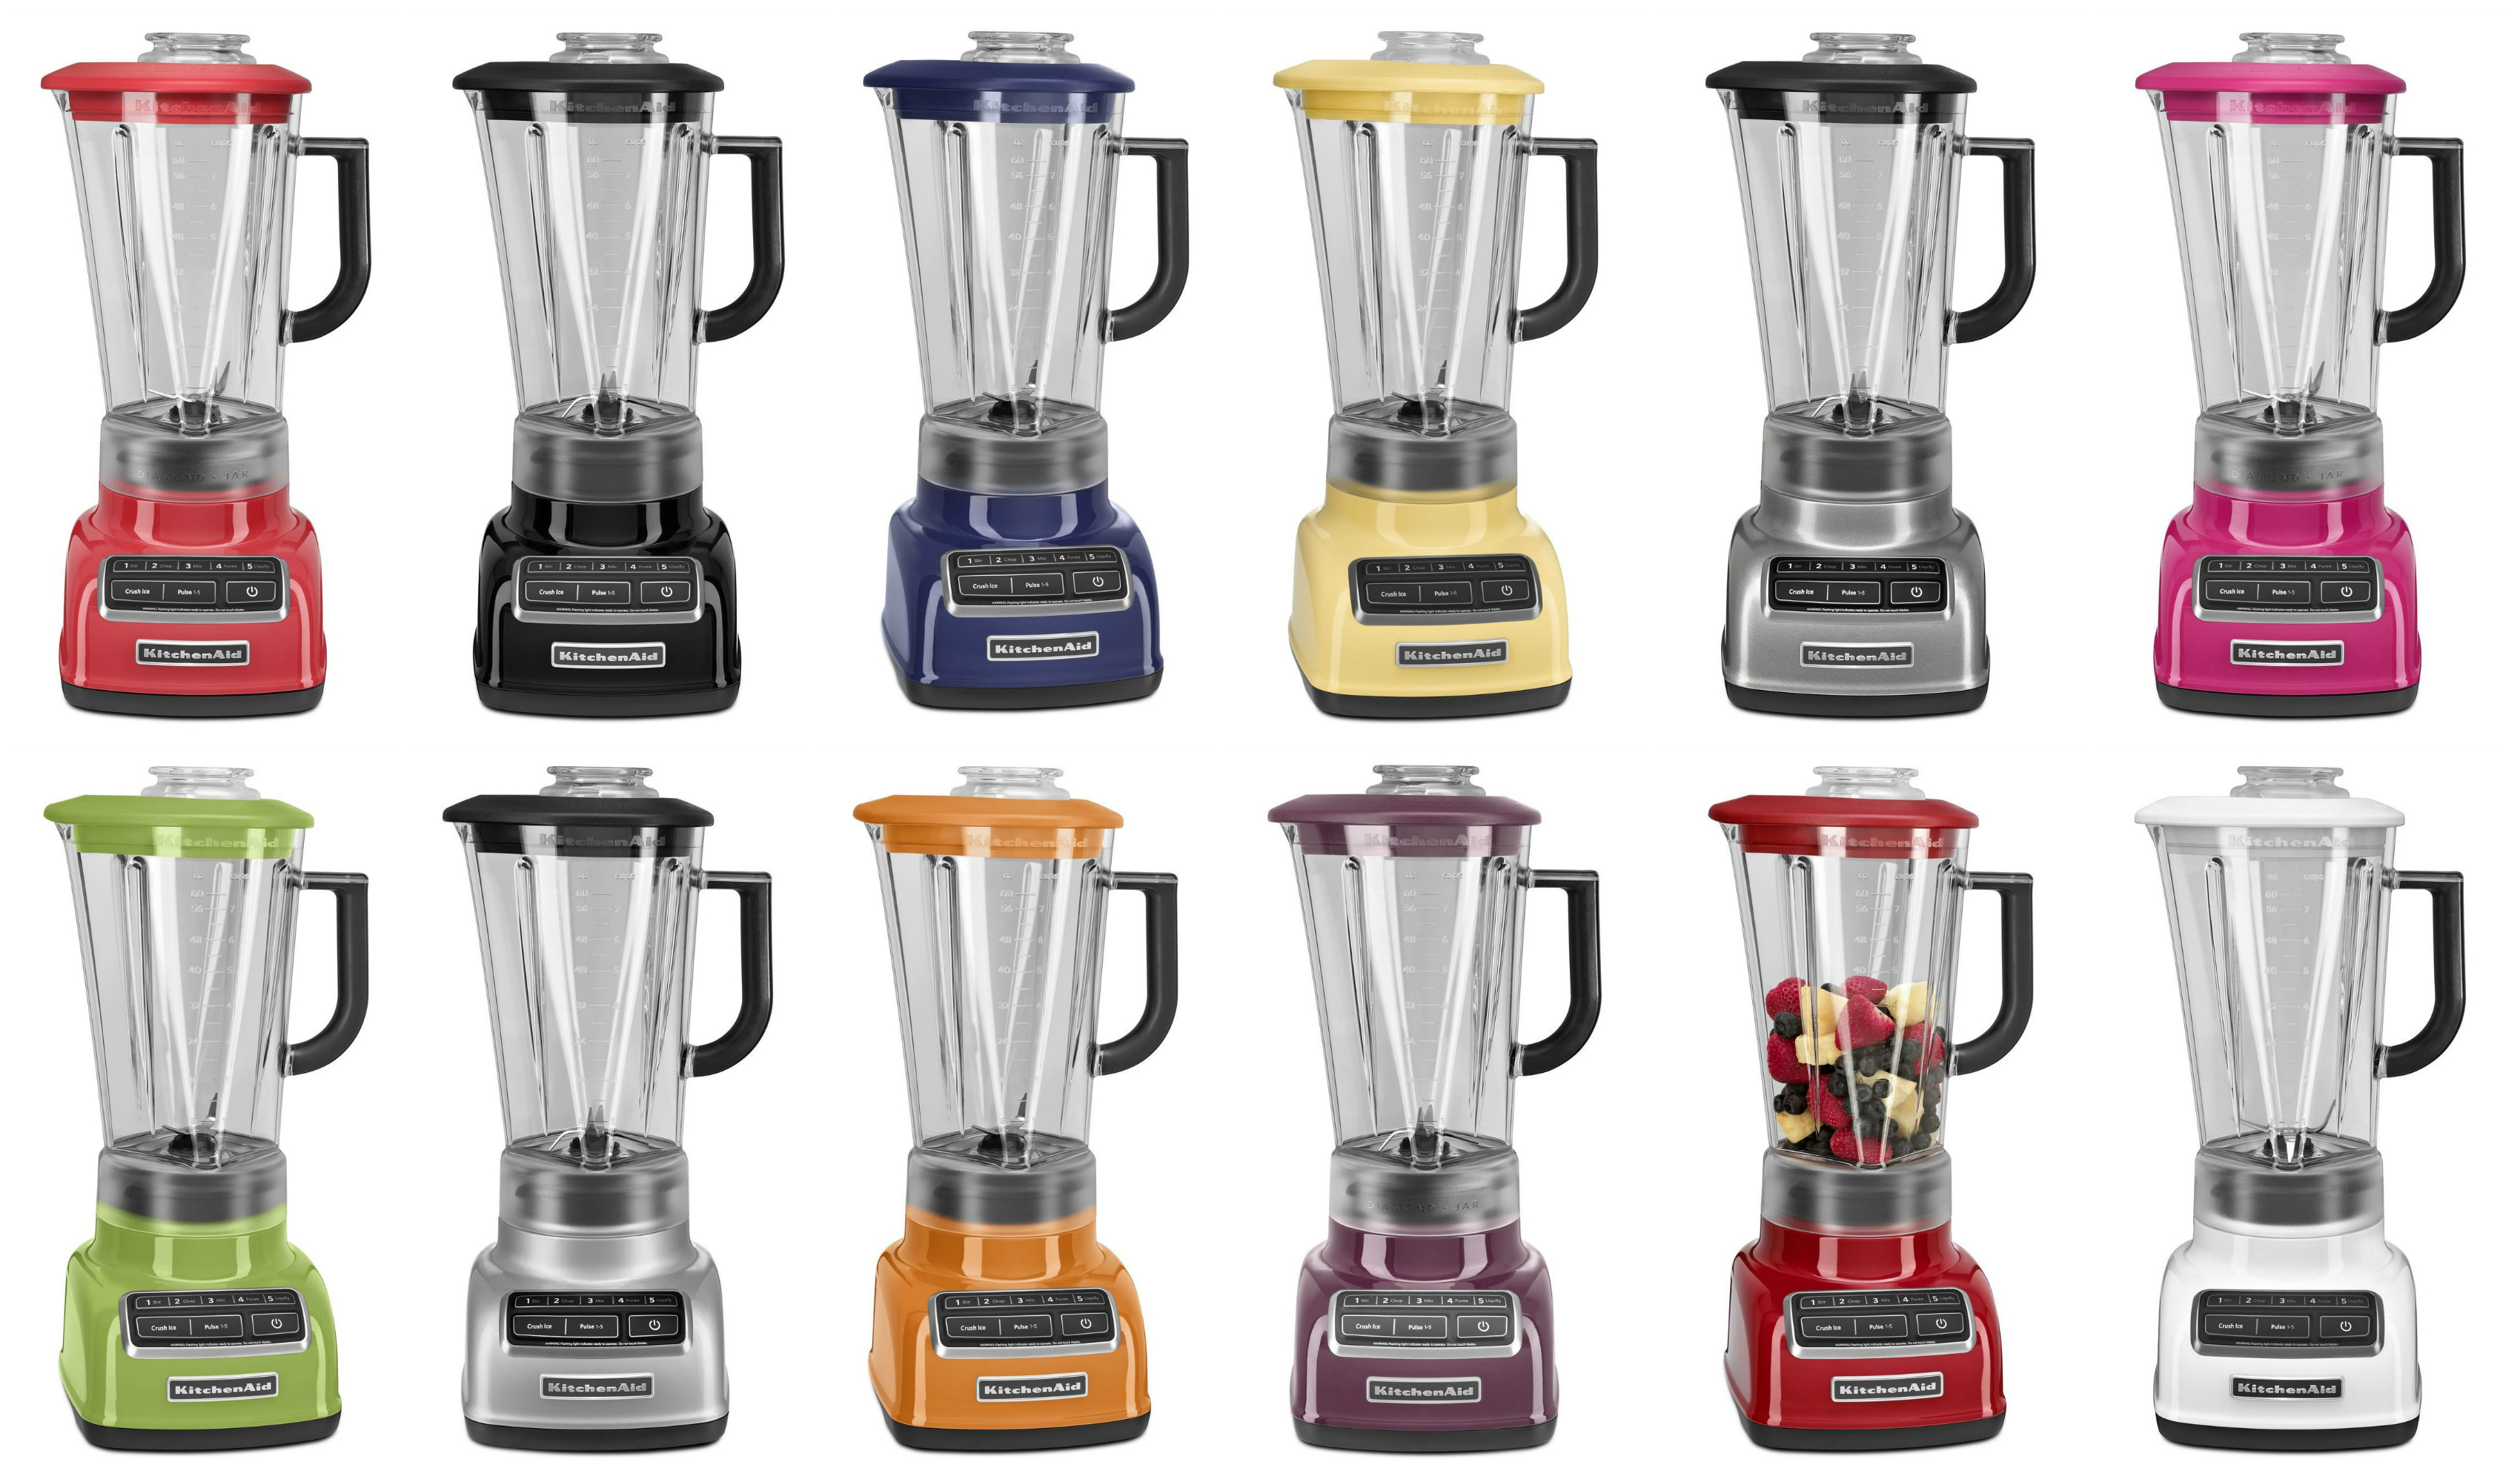 KitchenAid 5-Speed Diamond Blender Review - Cook Logic